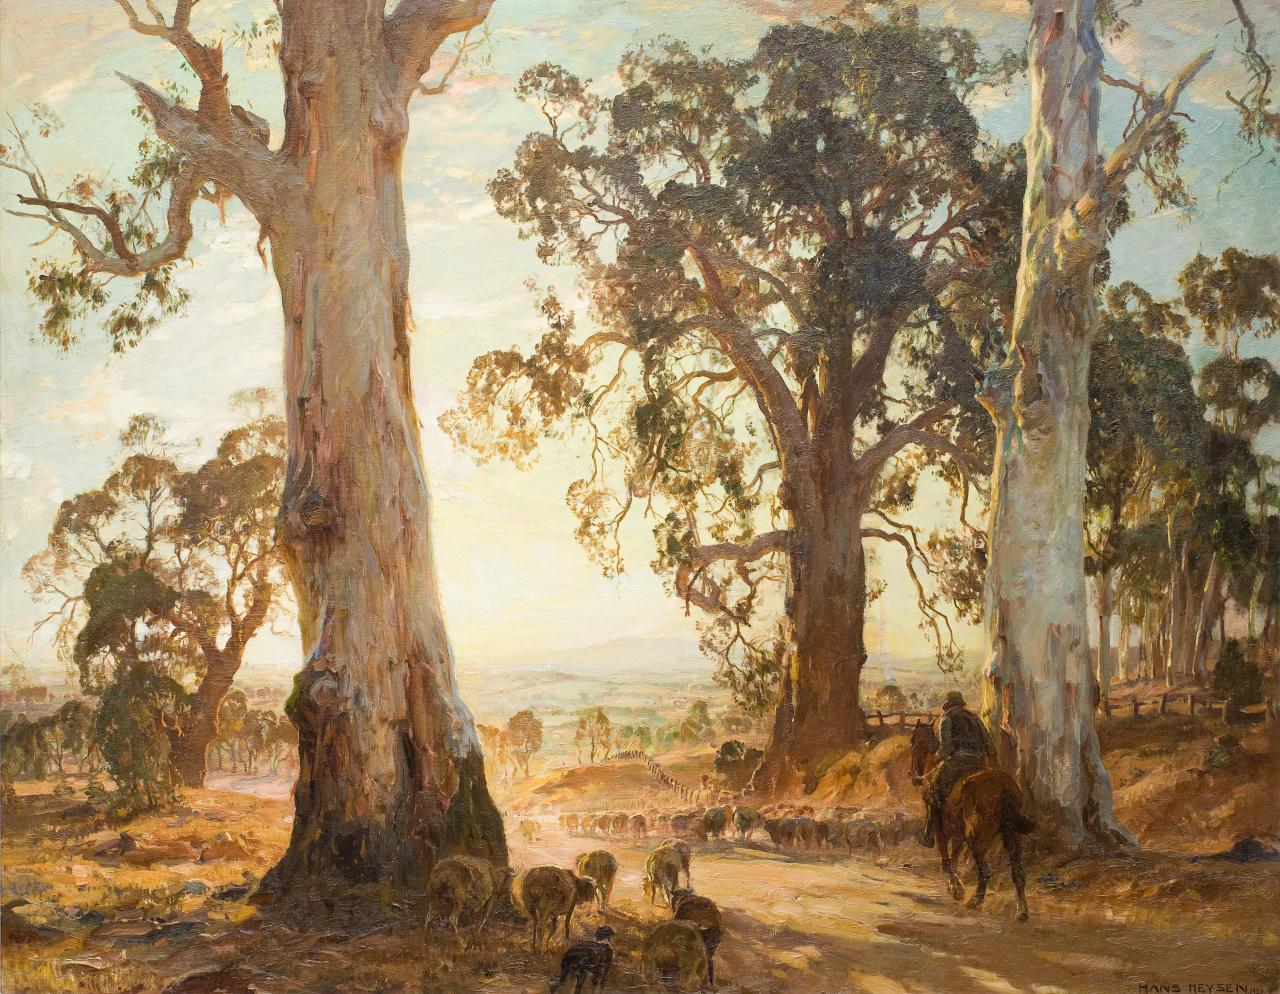 Hans and Nora Heysen: Two Generations of Australian Art